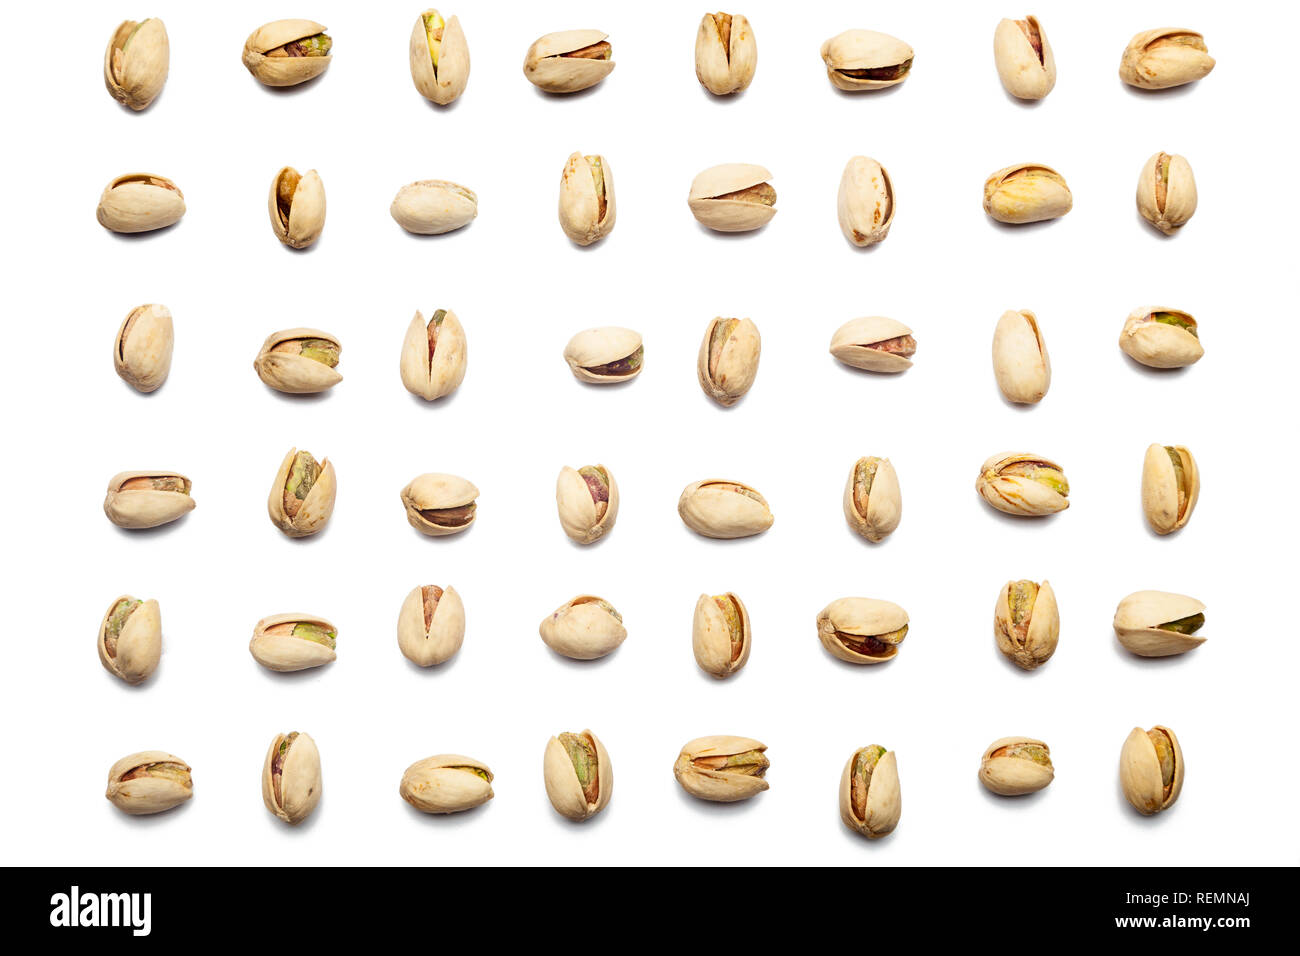 2fb387ce6b5e6 A collection of pistachio nuts lie in horizontal rows on an isolated white  background. with